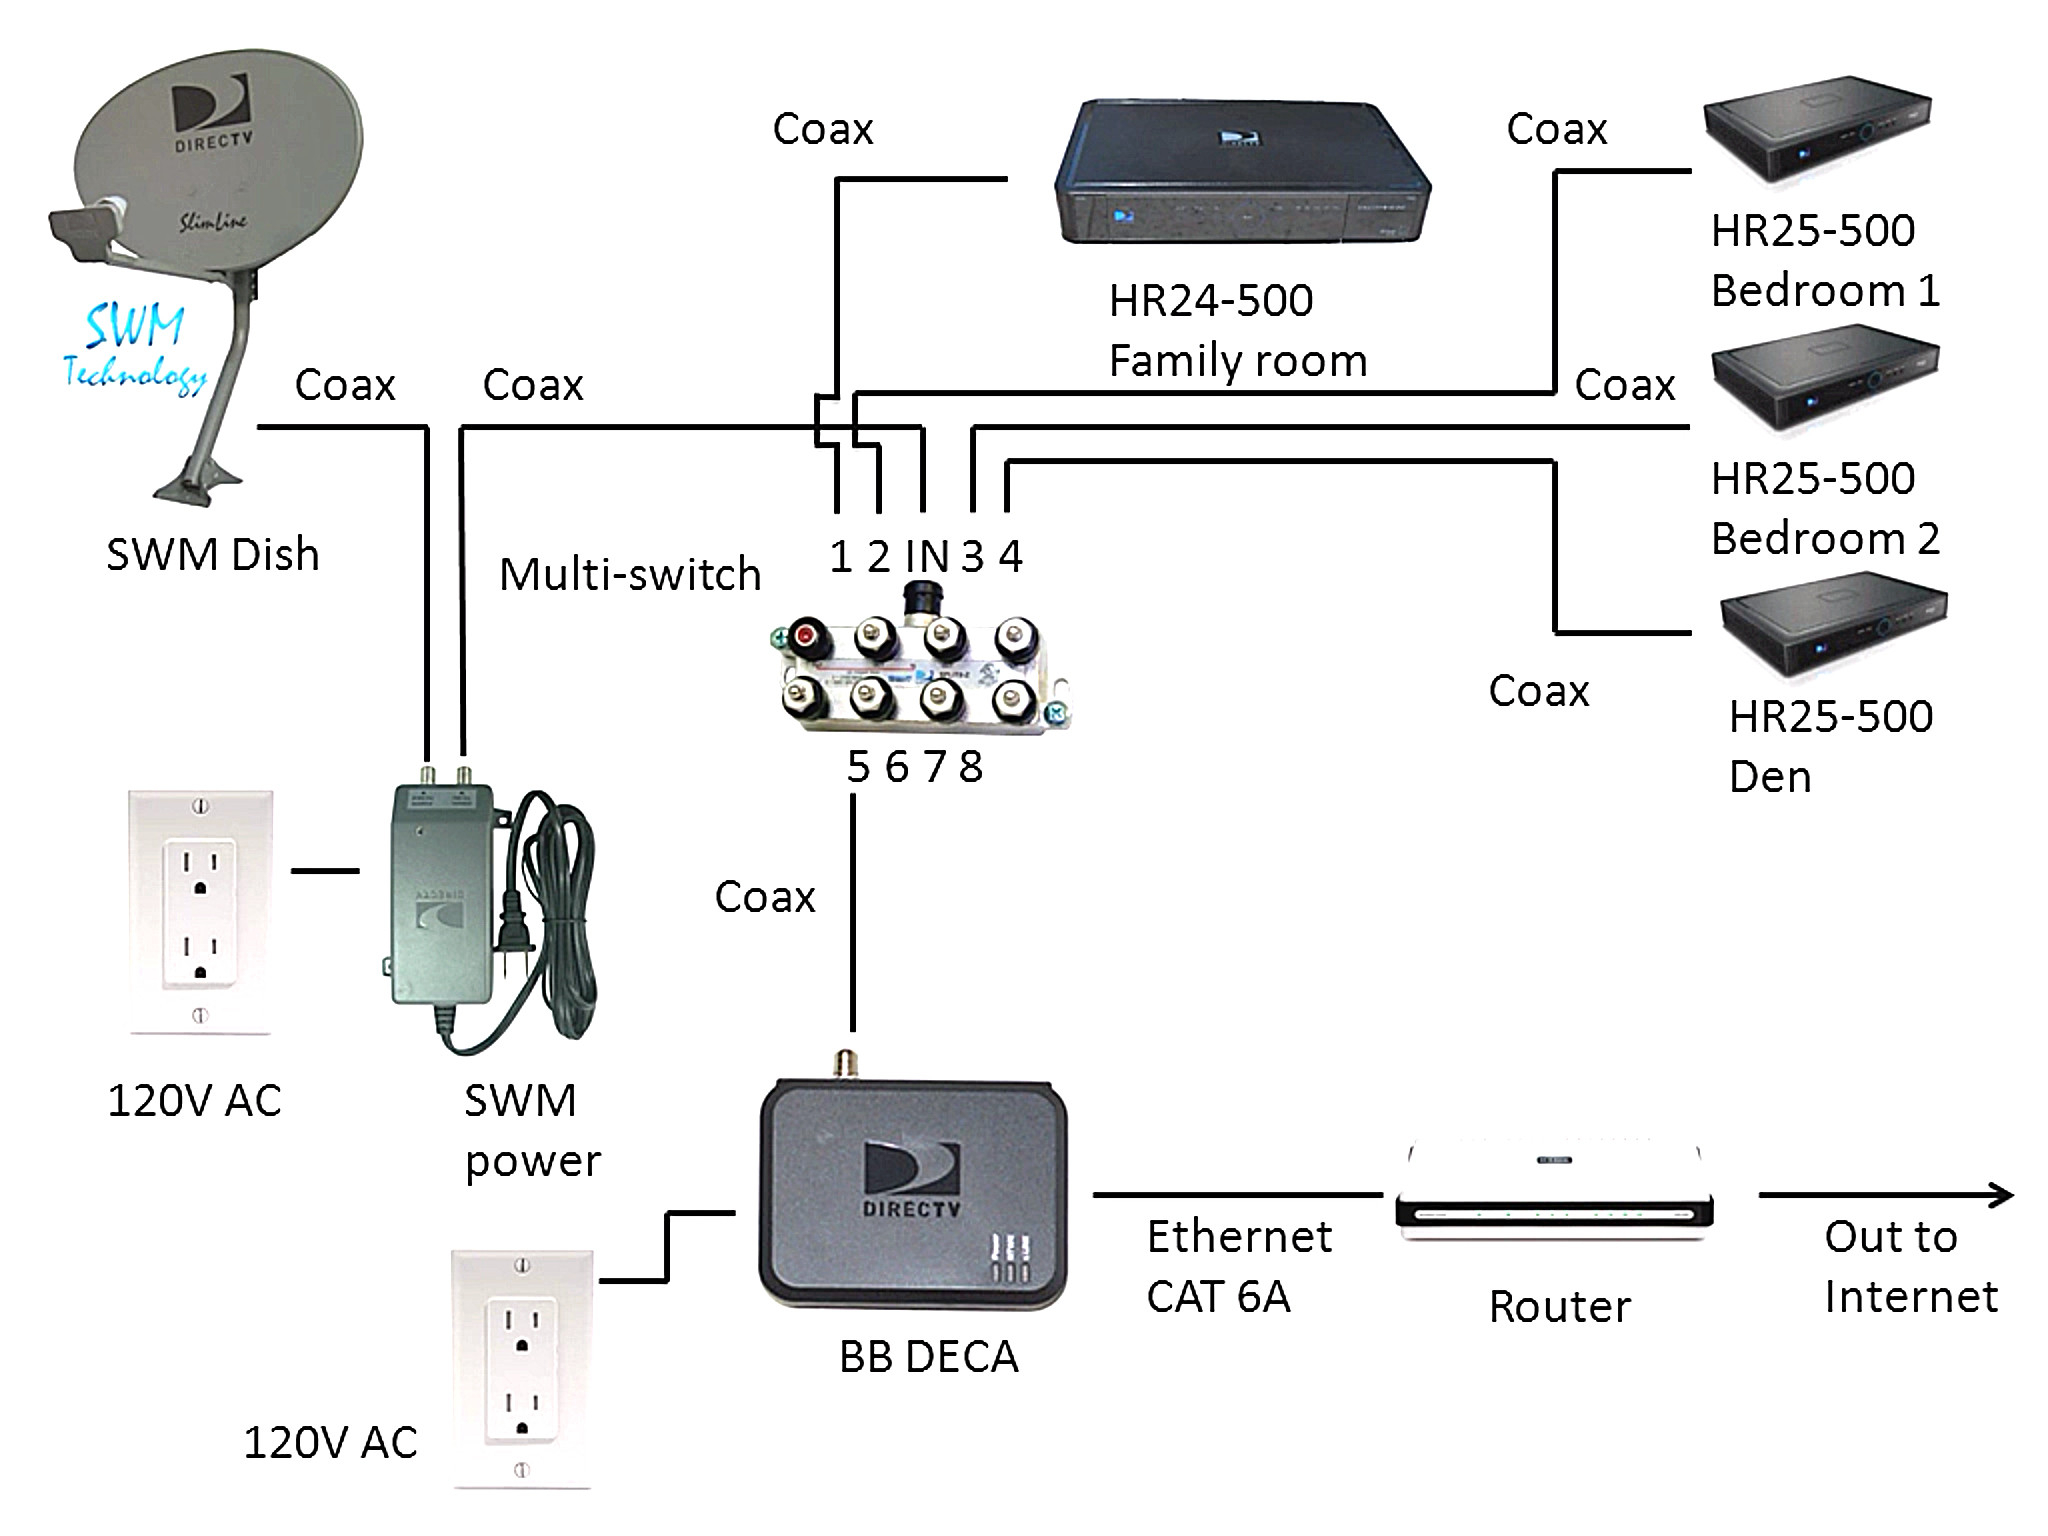 direct tv wiring diagram whole home dvr Collection-whole home wiring diagram best directv wiring diagram whole home dvr rh kobecityinfo direct tv 19-g